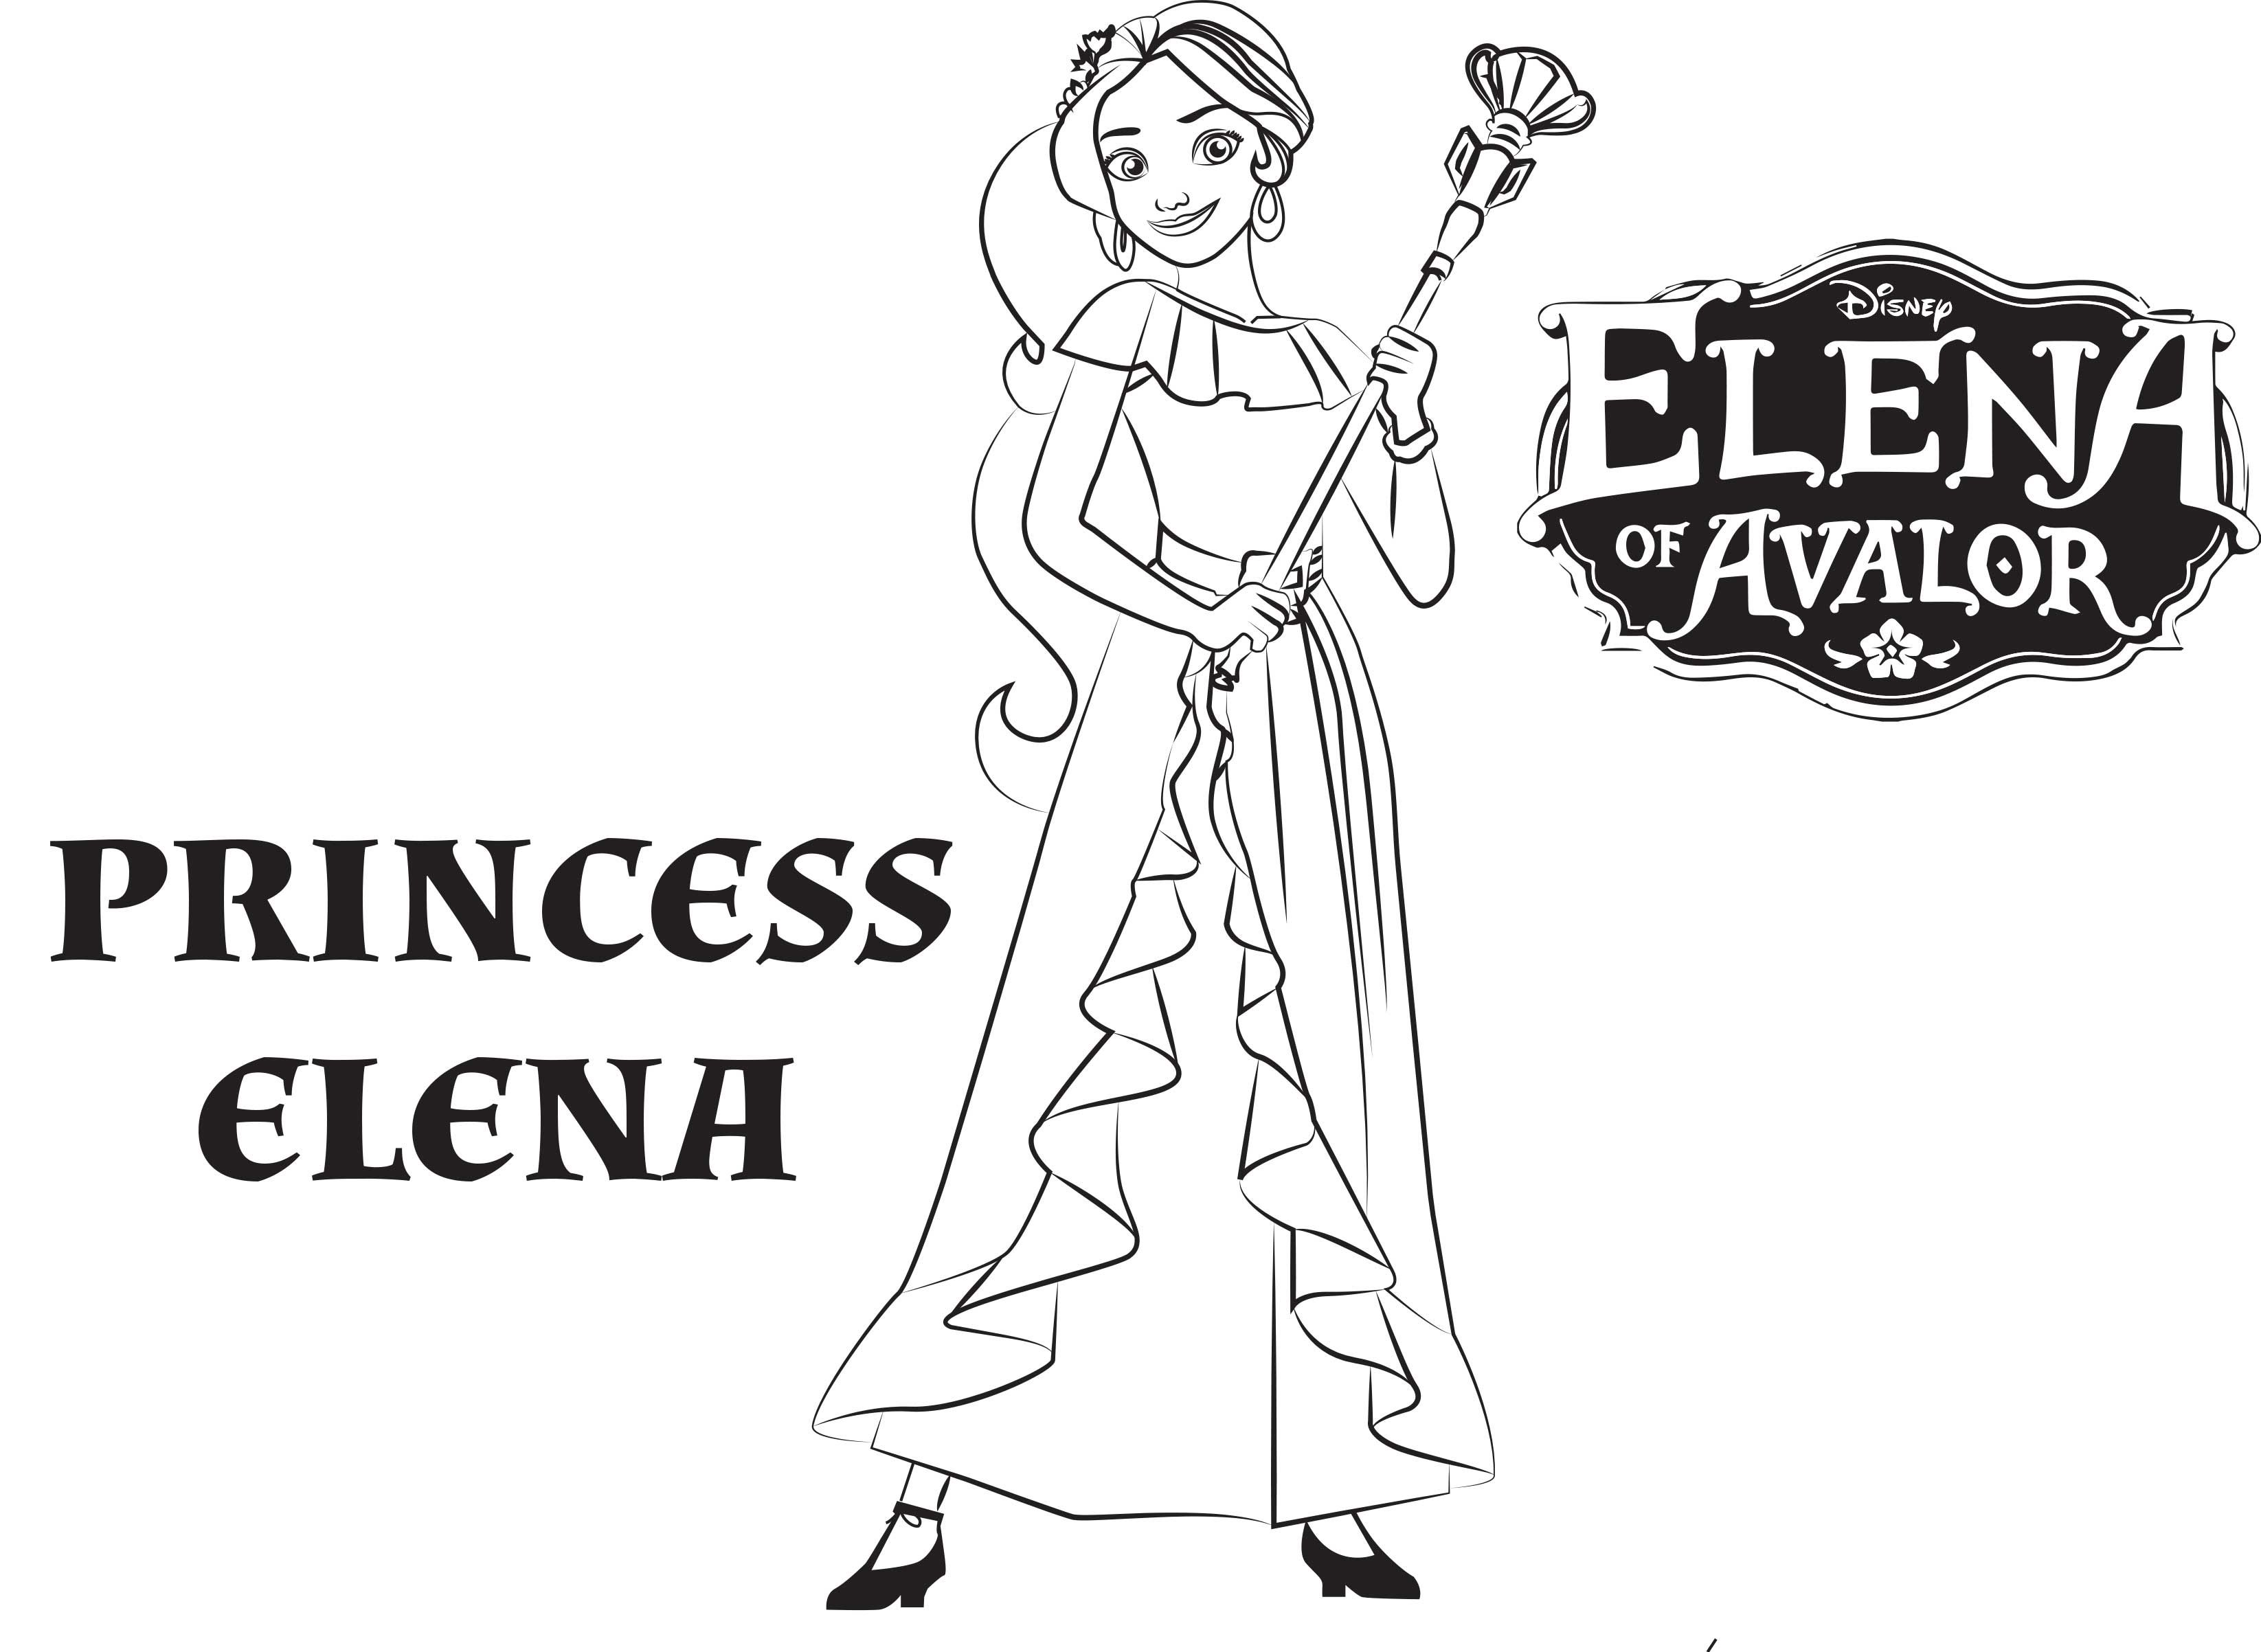 Disneys Elena Of Avalor Coloring Pages Sheet Free Disney